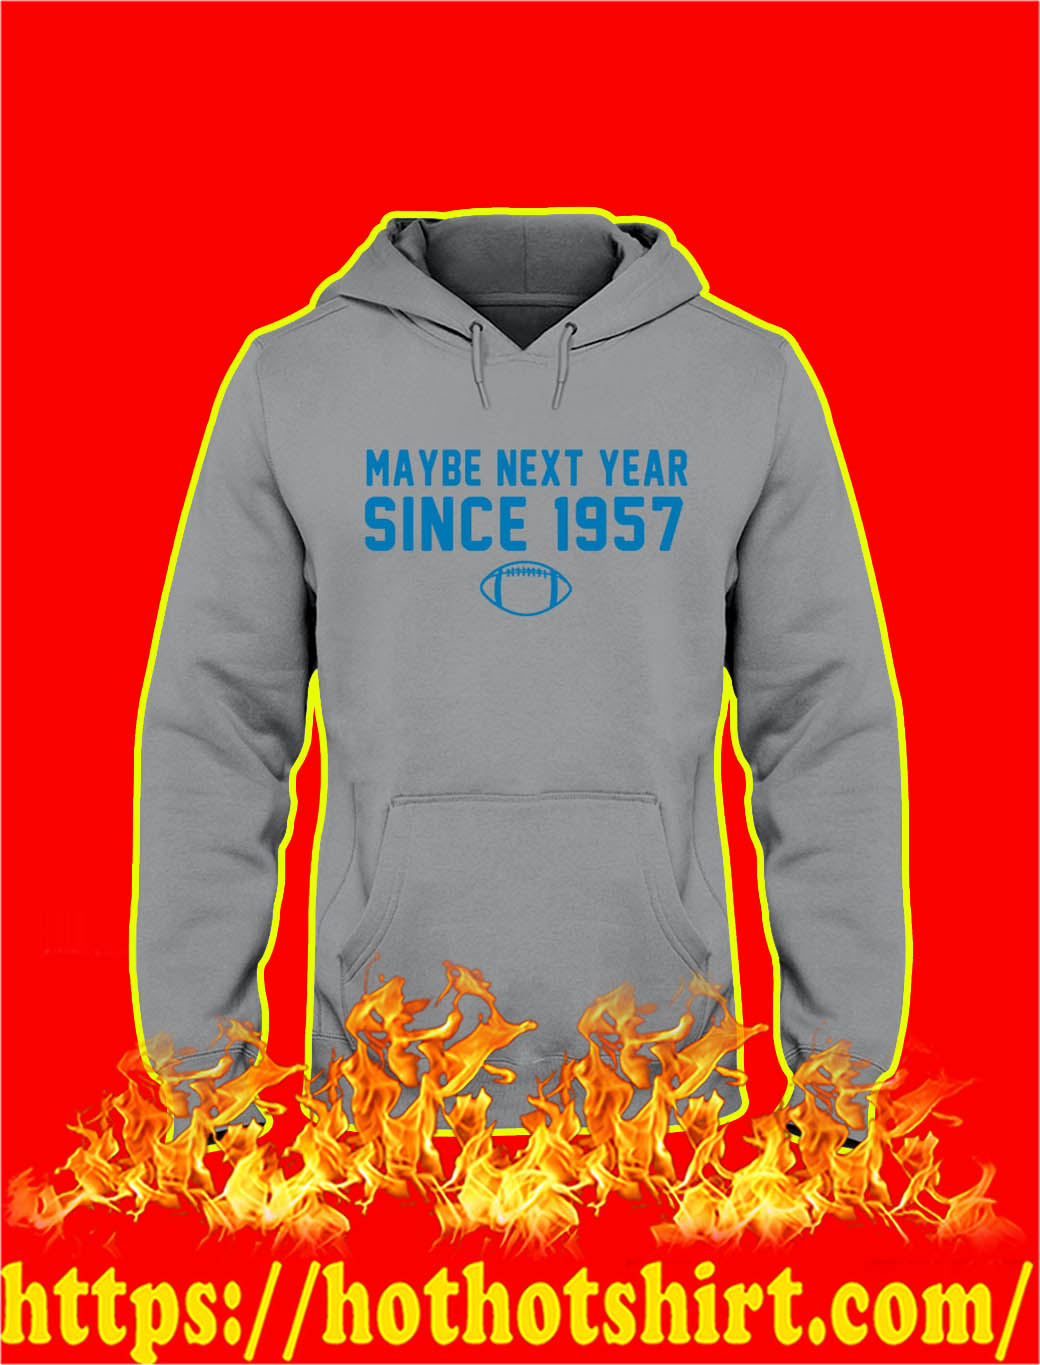 Maybe Next Year Since 1957 hooded sweatshirt